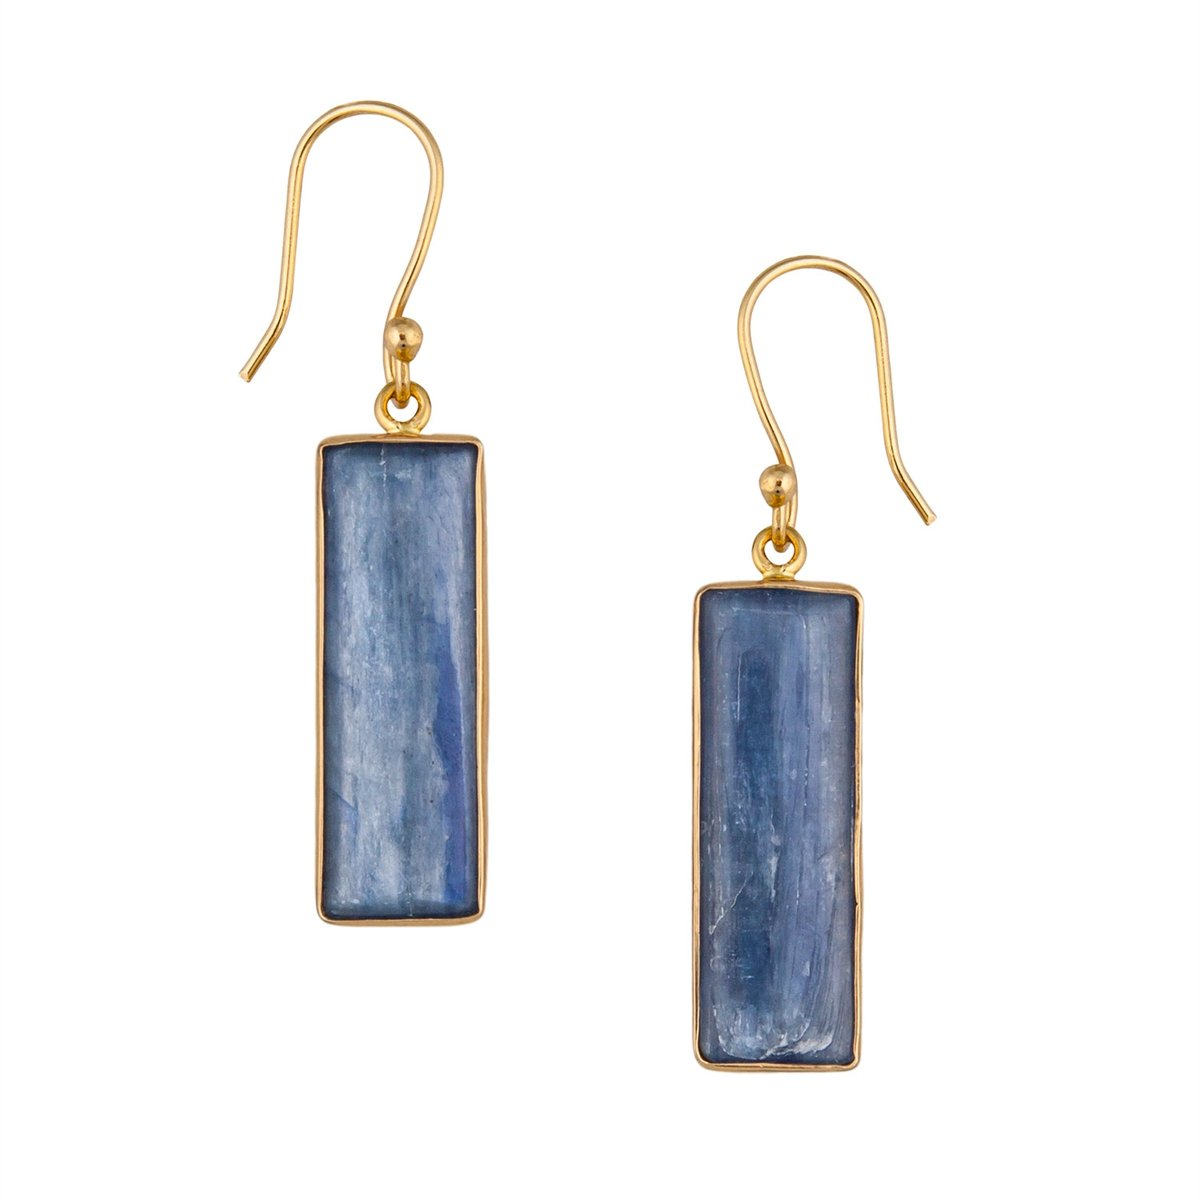 Alchemia Kyanite Earrings